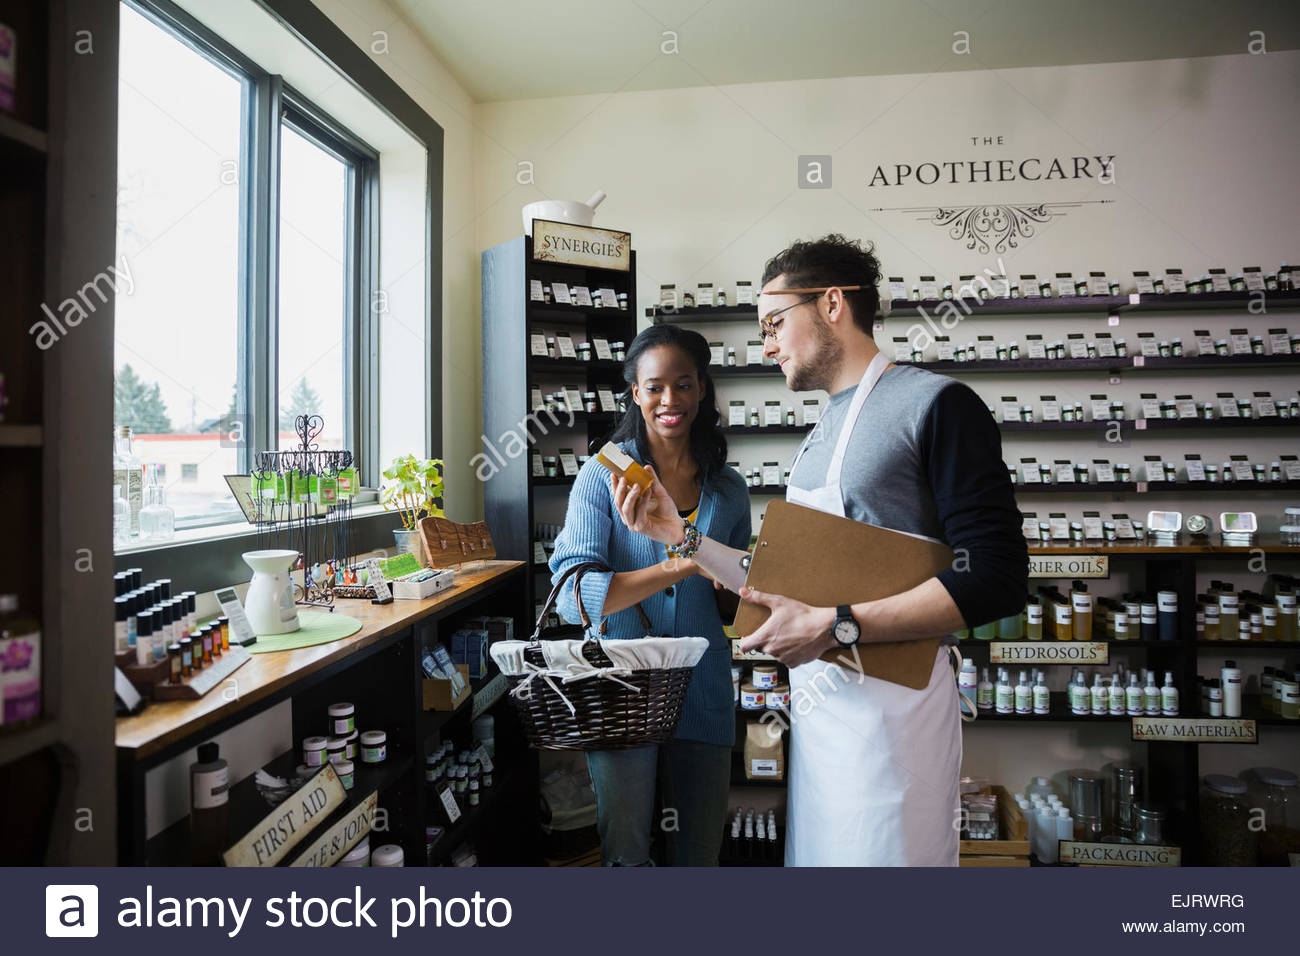 Apothecary shop owner showing customer product Stock Photo